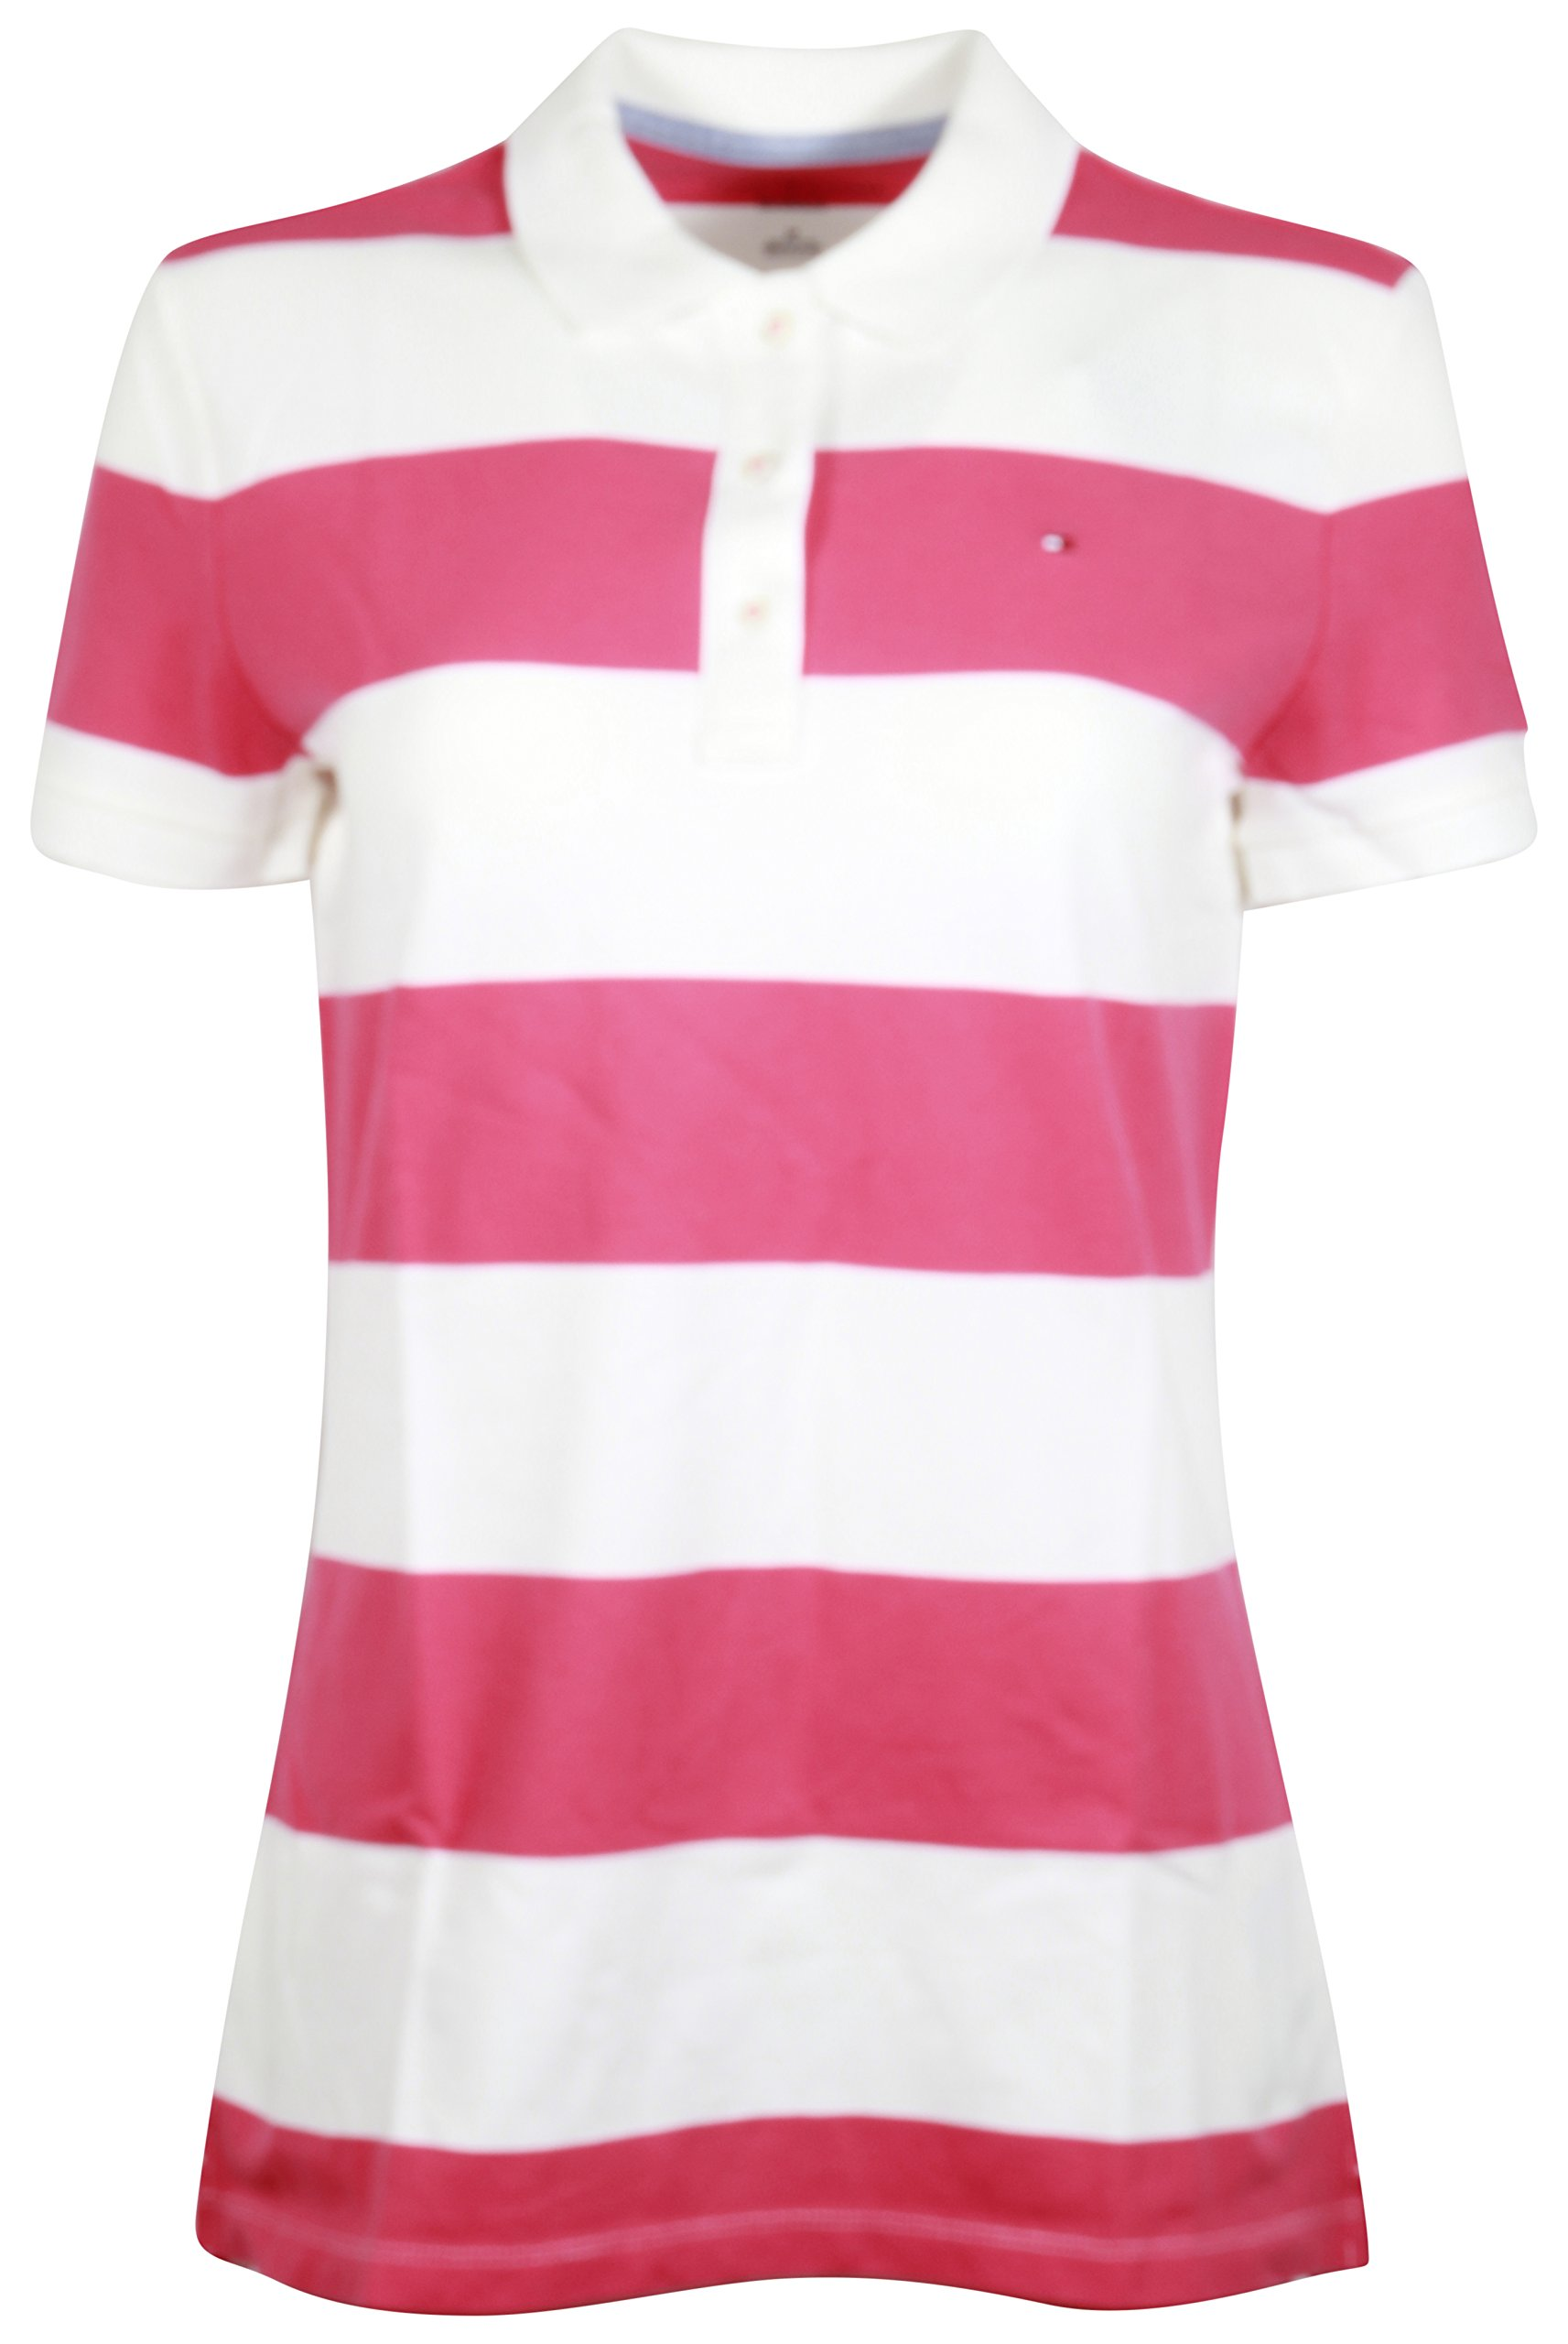 Tommy Hilfiger Women's Relaxed Fit Polo Shirt (X Small, PinkWhite)